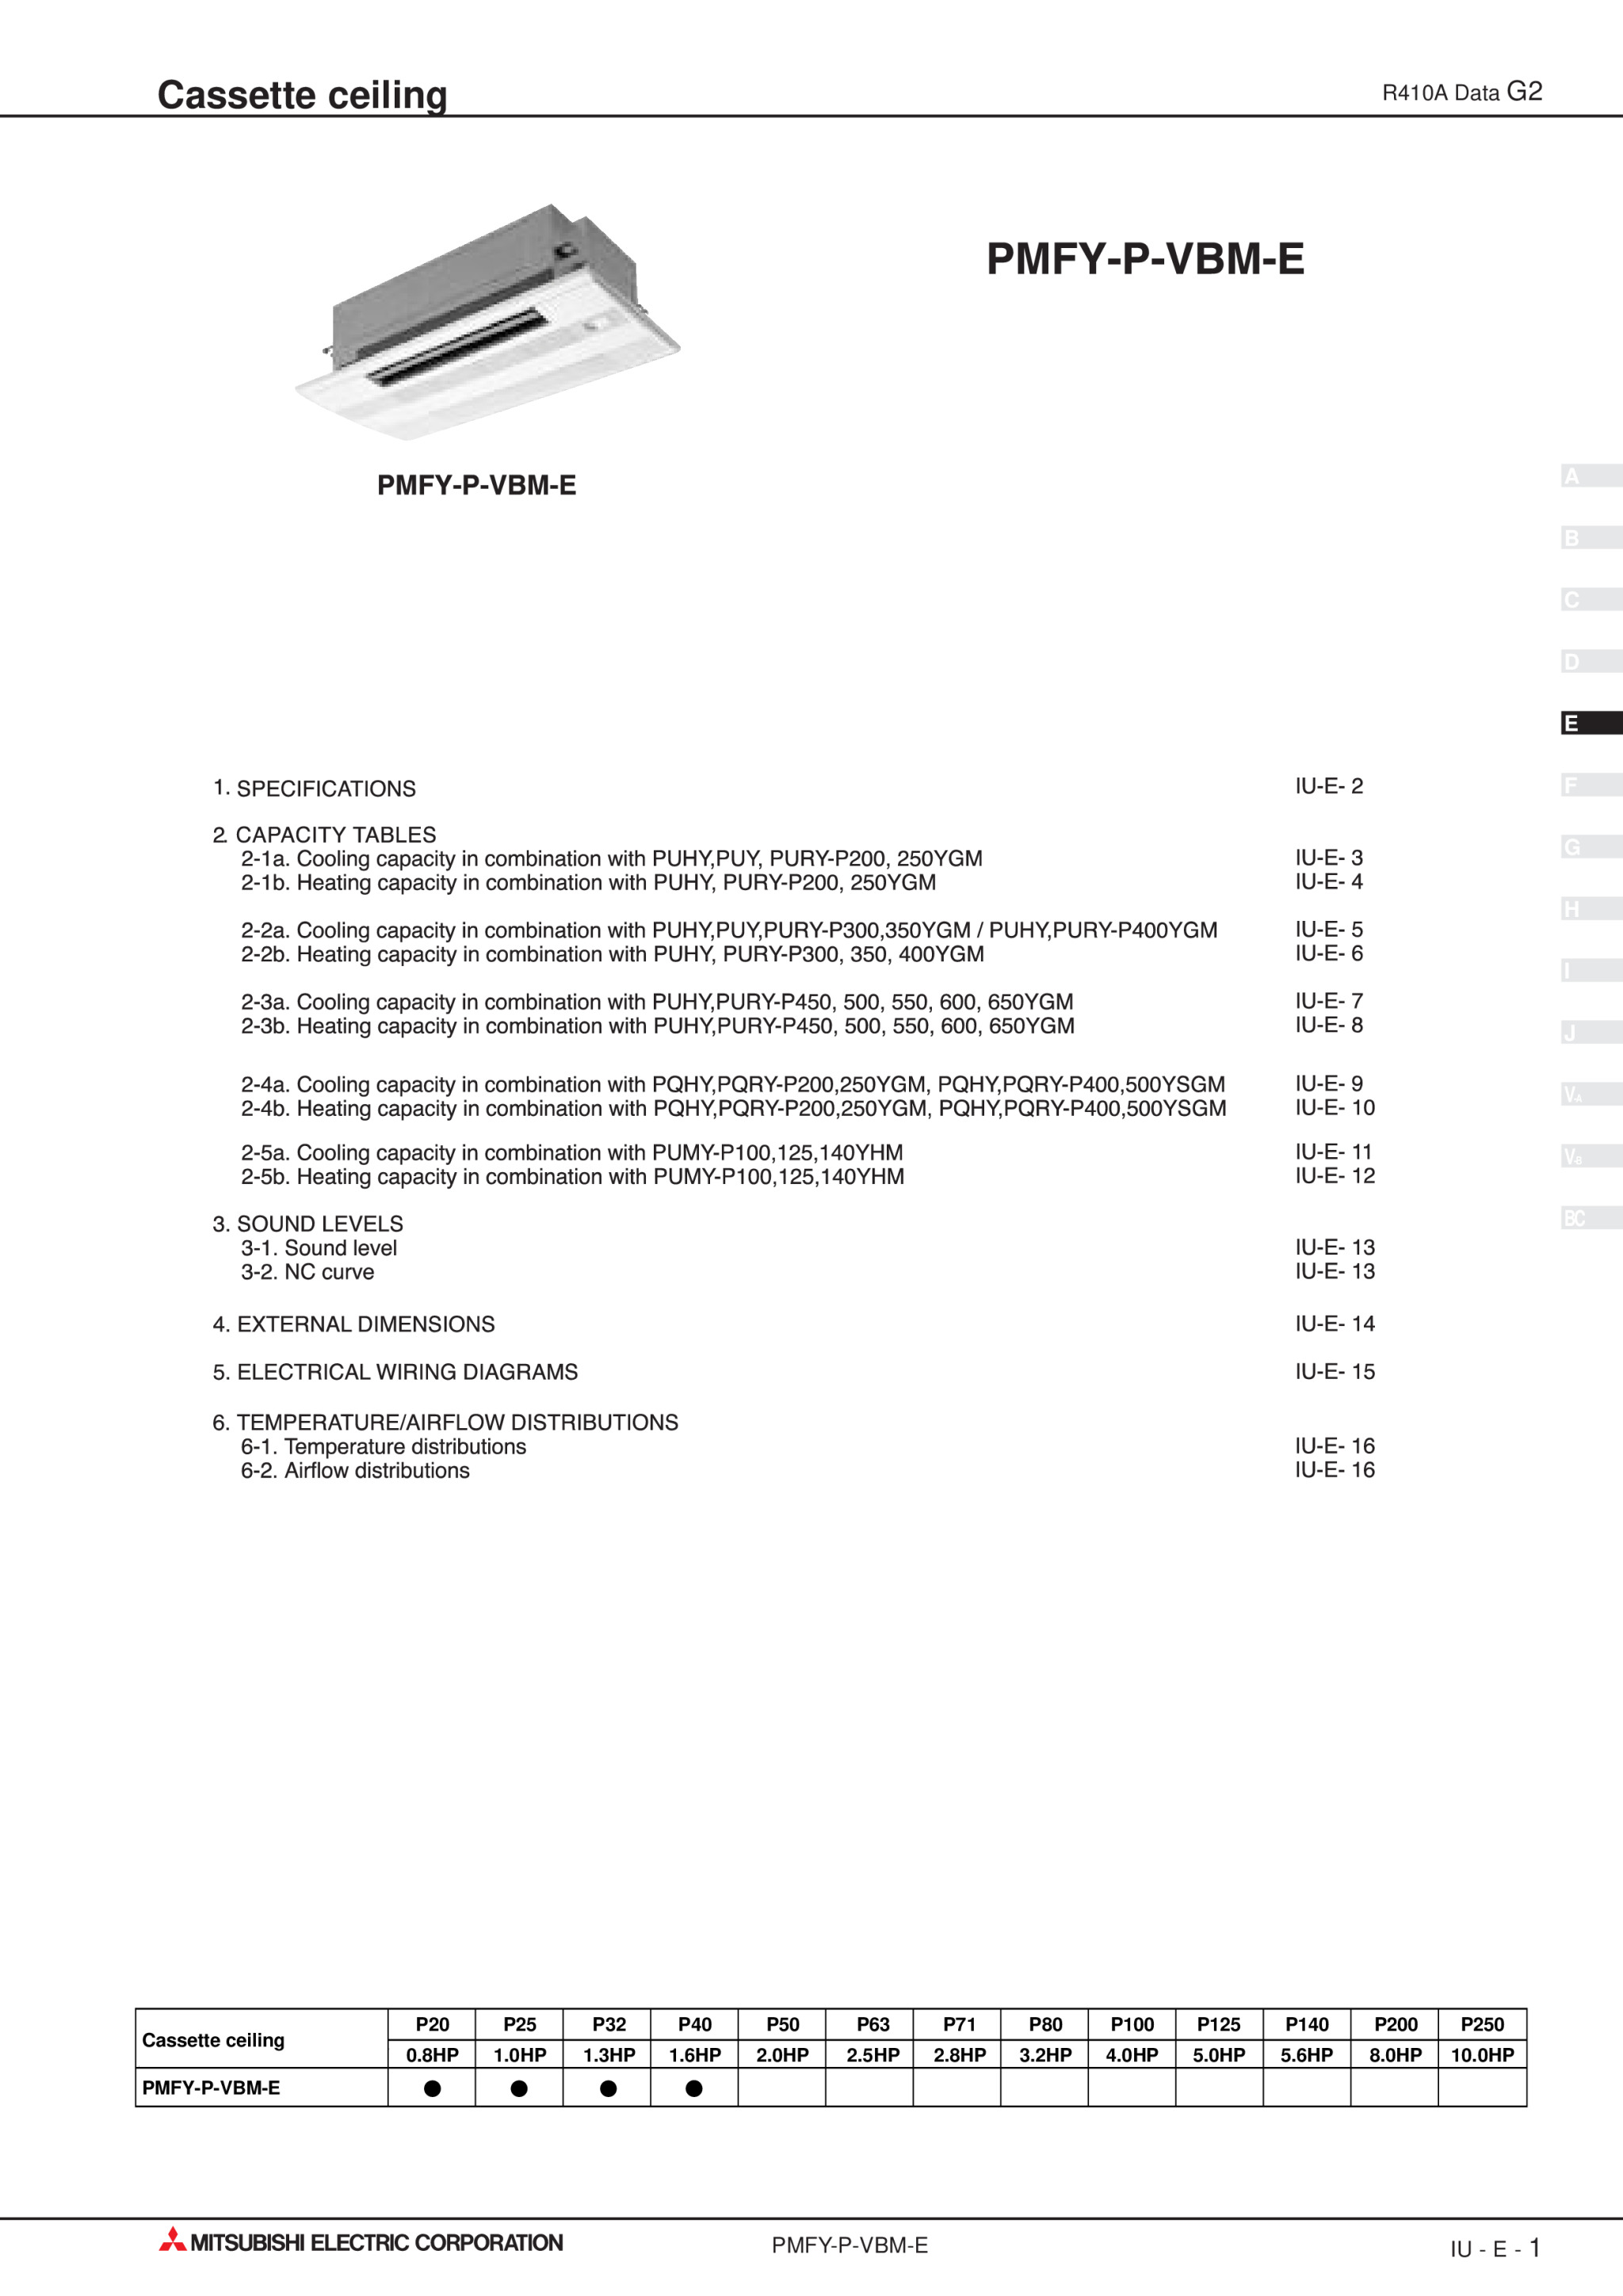 Pqhy Ygm A Databook Mitsubishi Electric P200 Wiring Diagram Page 74 Zoom In